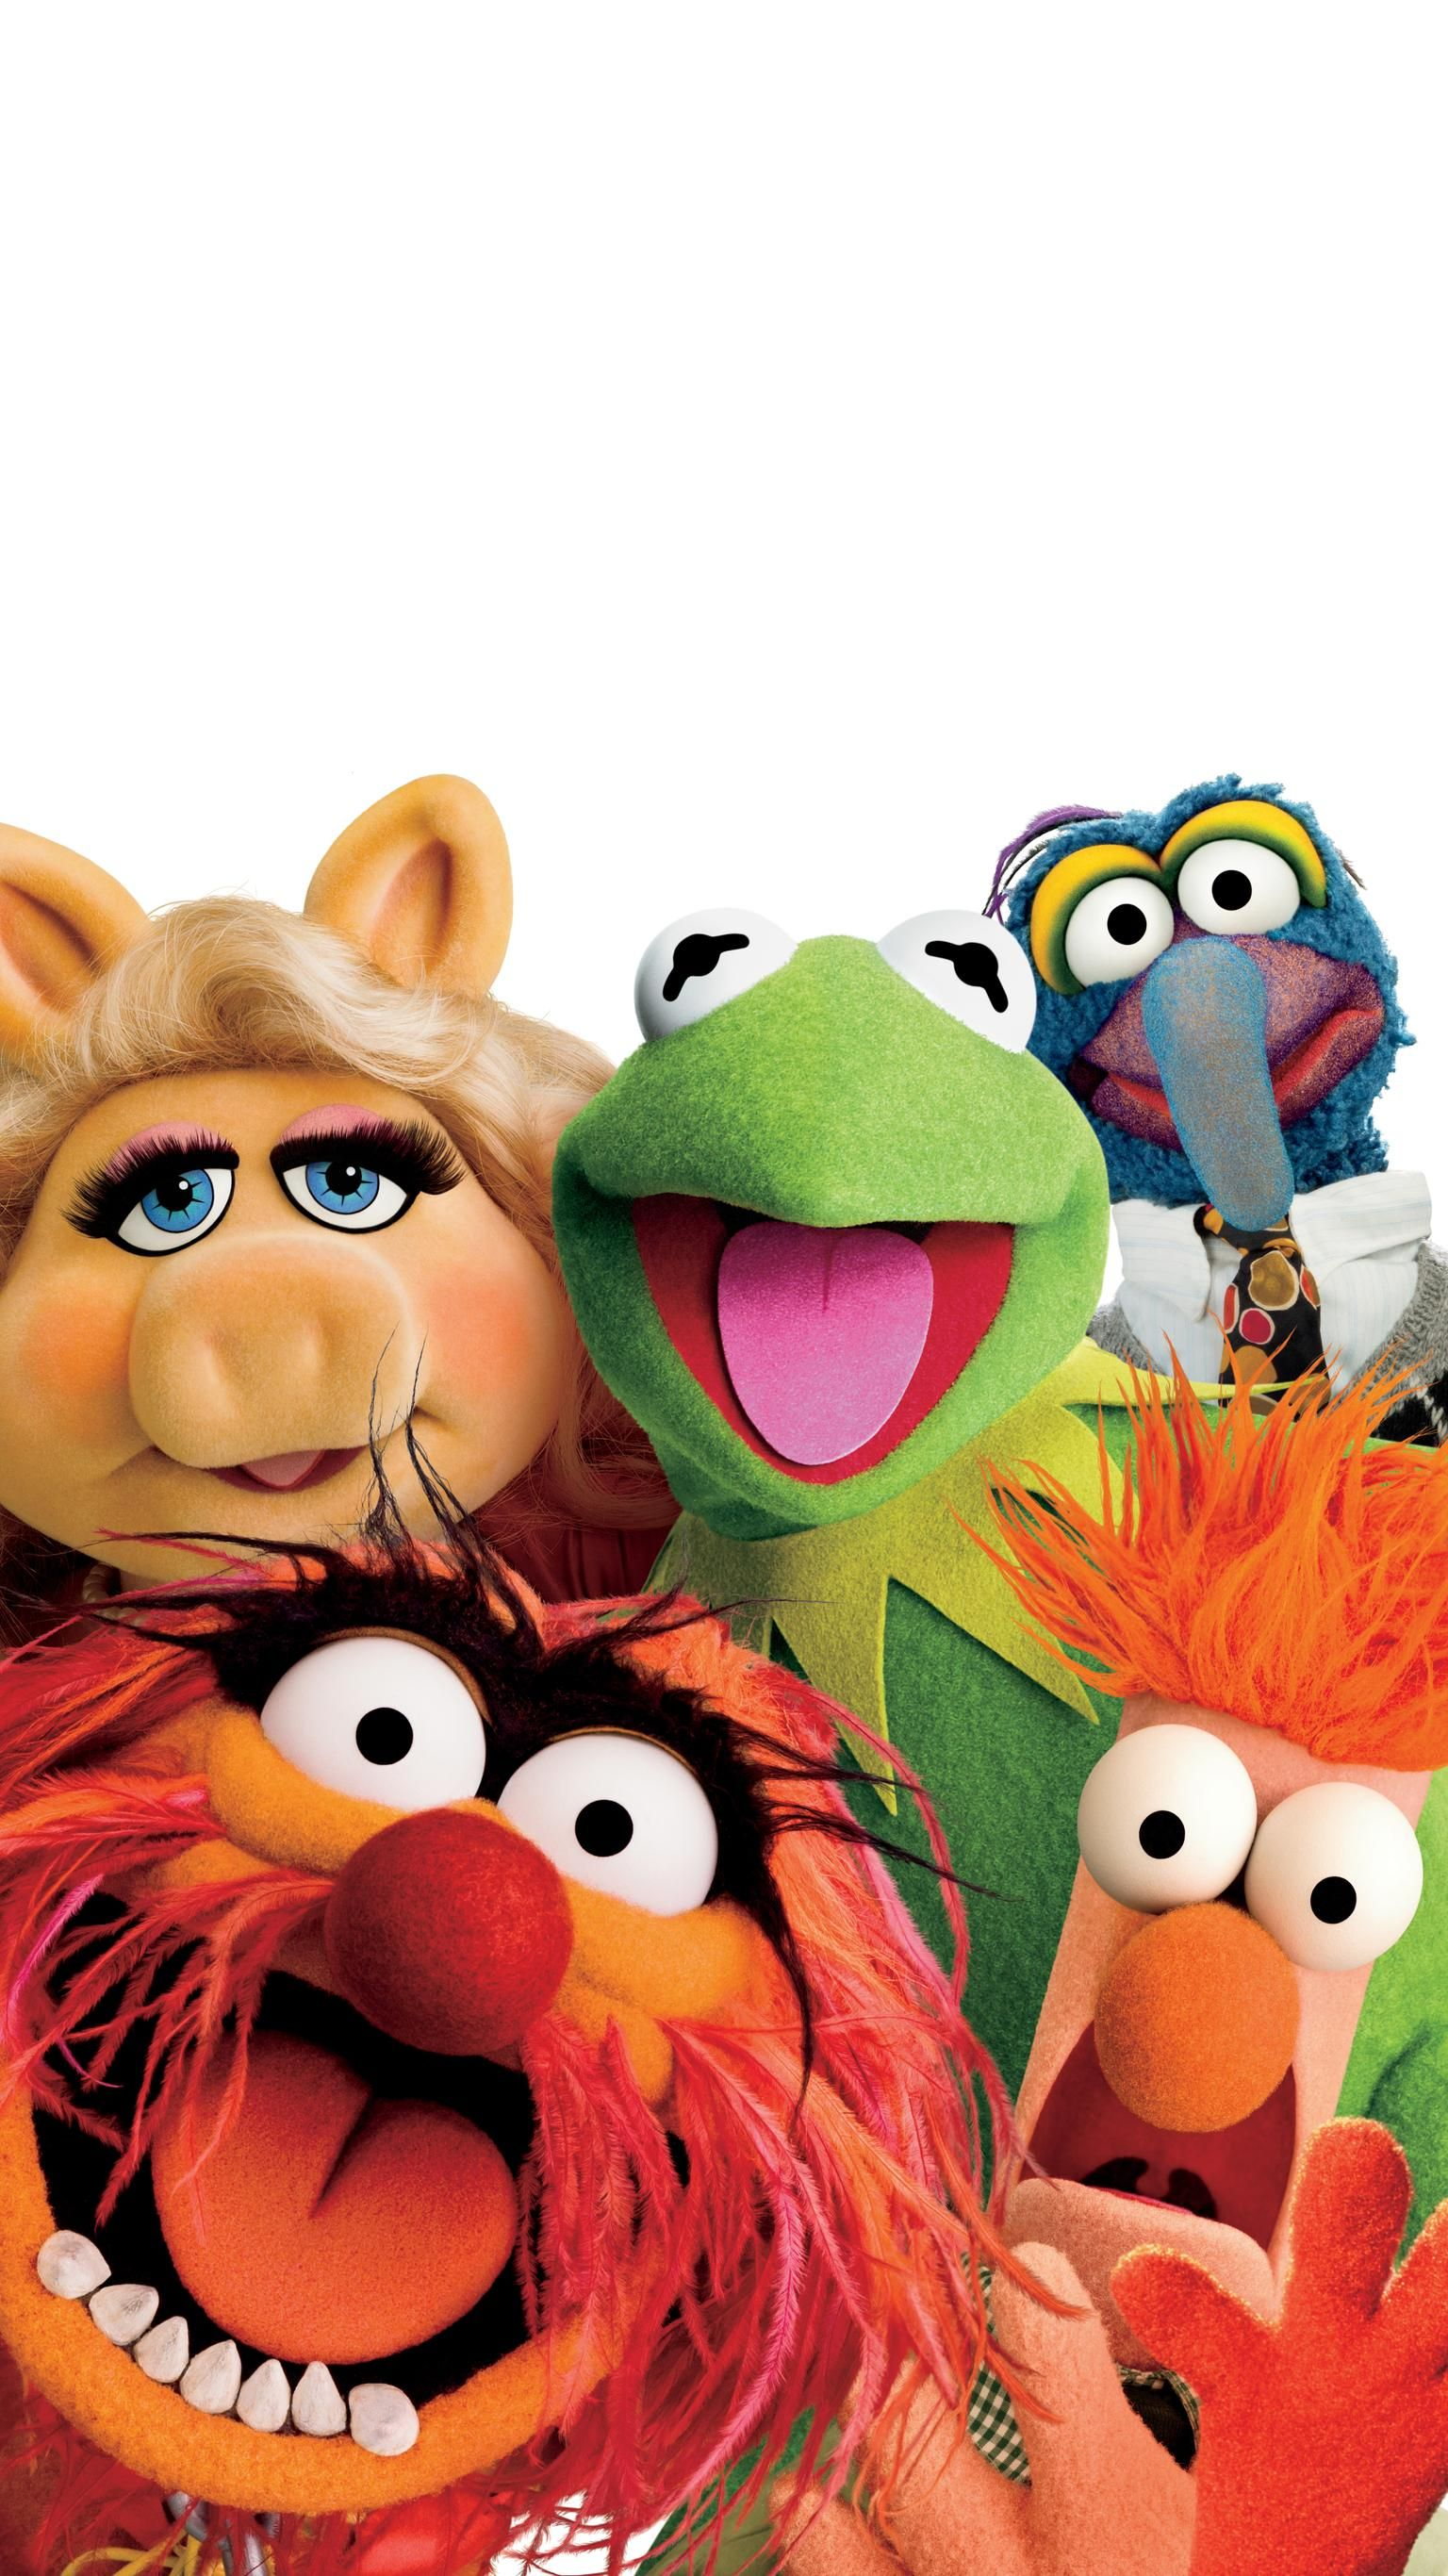 The Muppets 2011 Phone Wallpaper Moviemania In 2020 The Muppets Characters Muppets Cute Disney Wallpaper